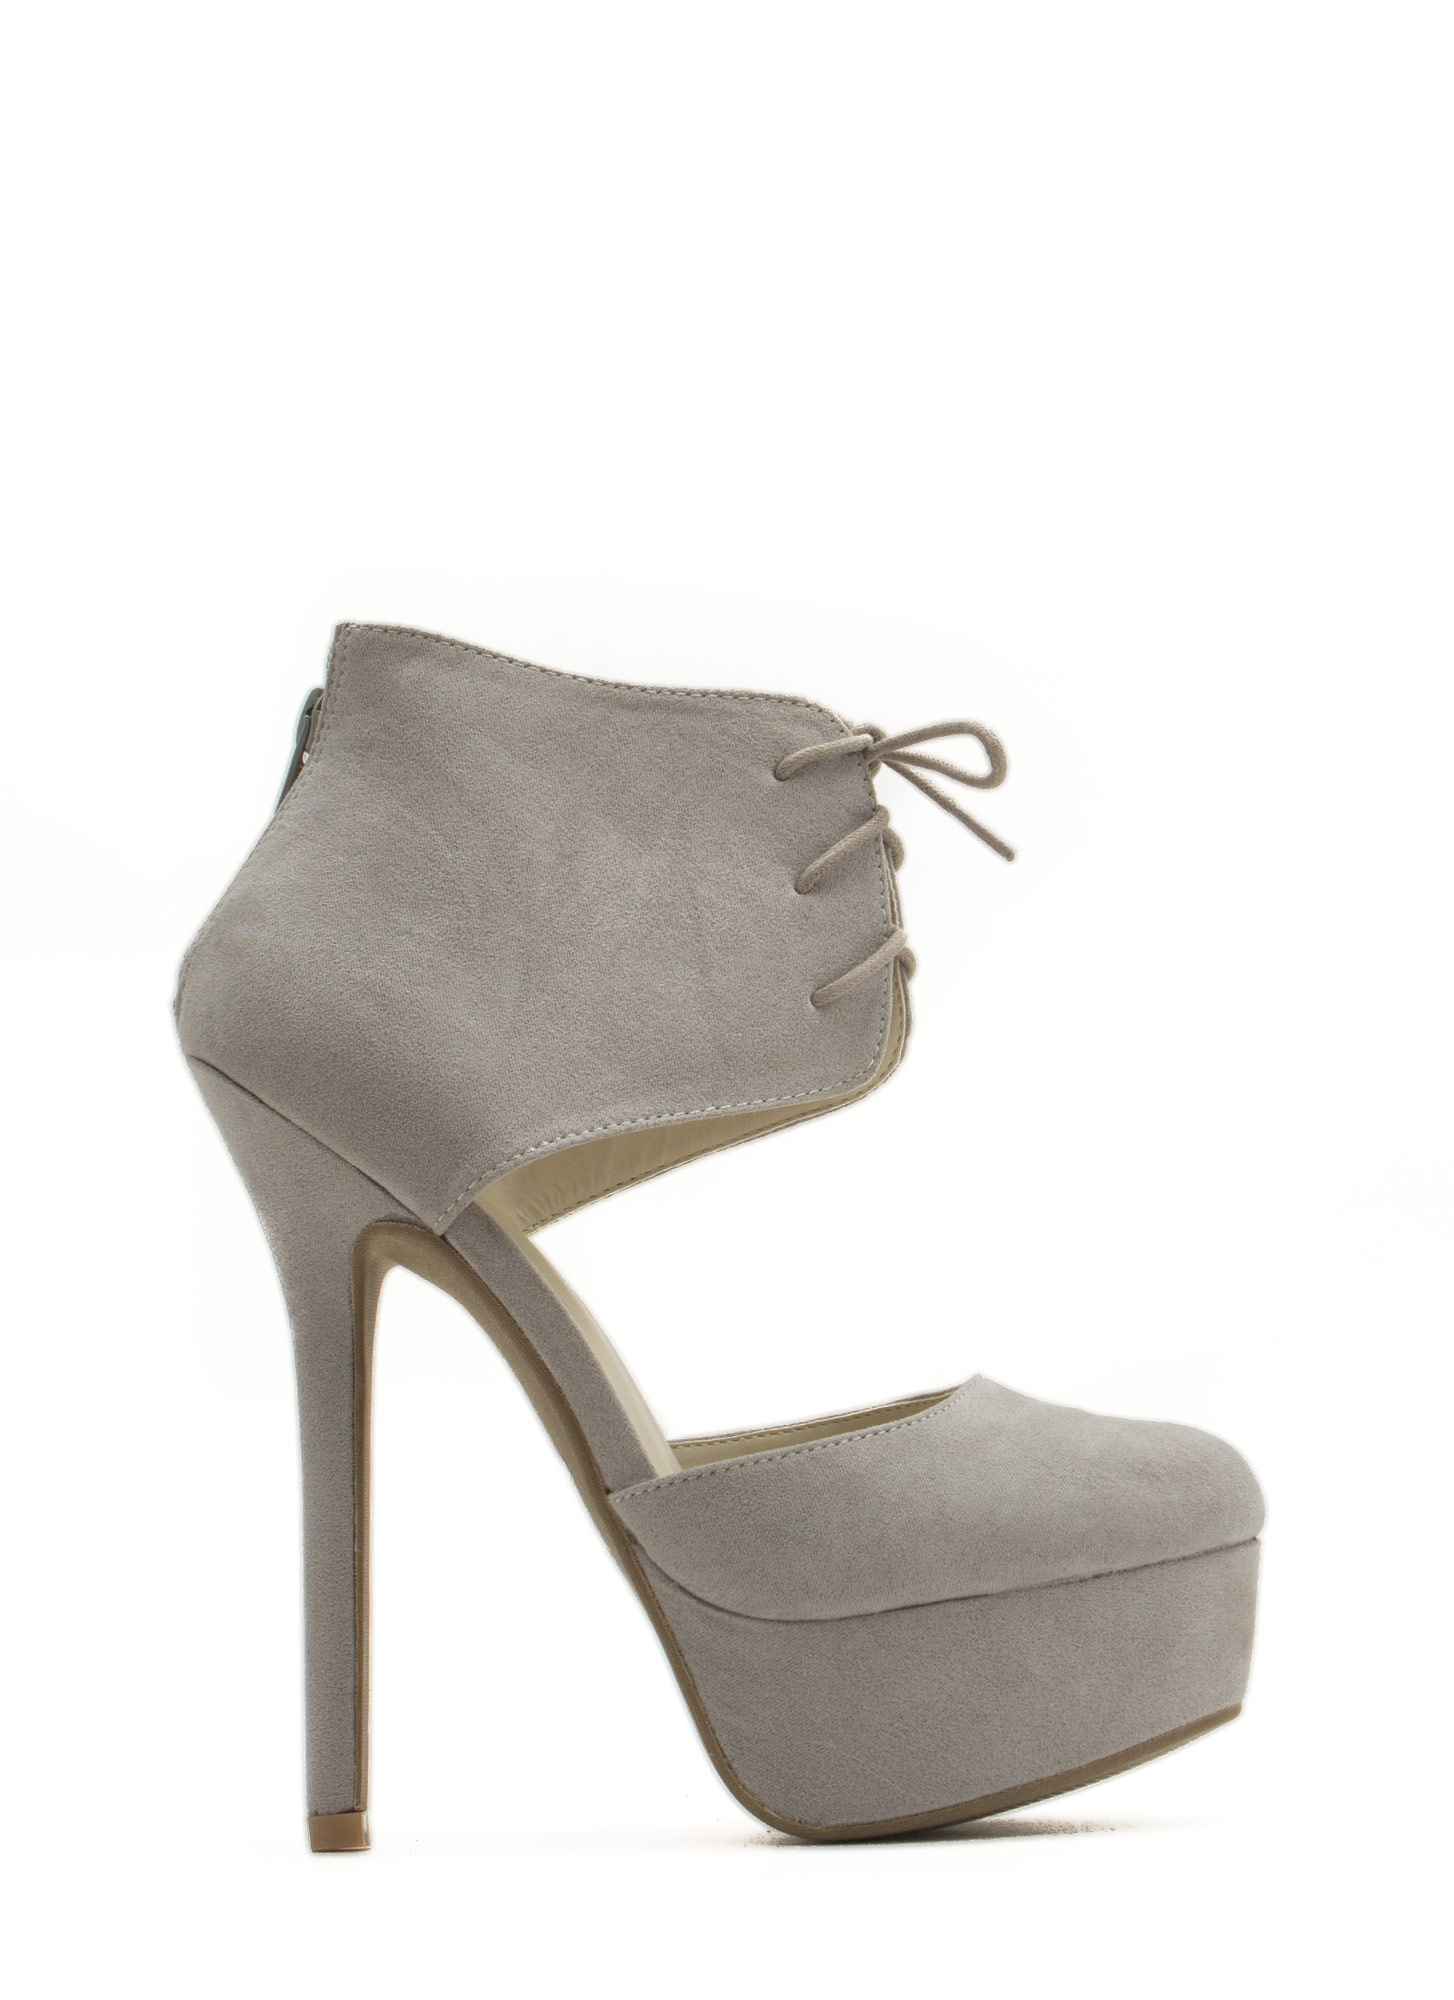 Wrapped Lace-Up Platform Heels LTGREY